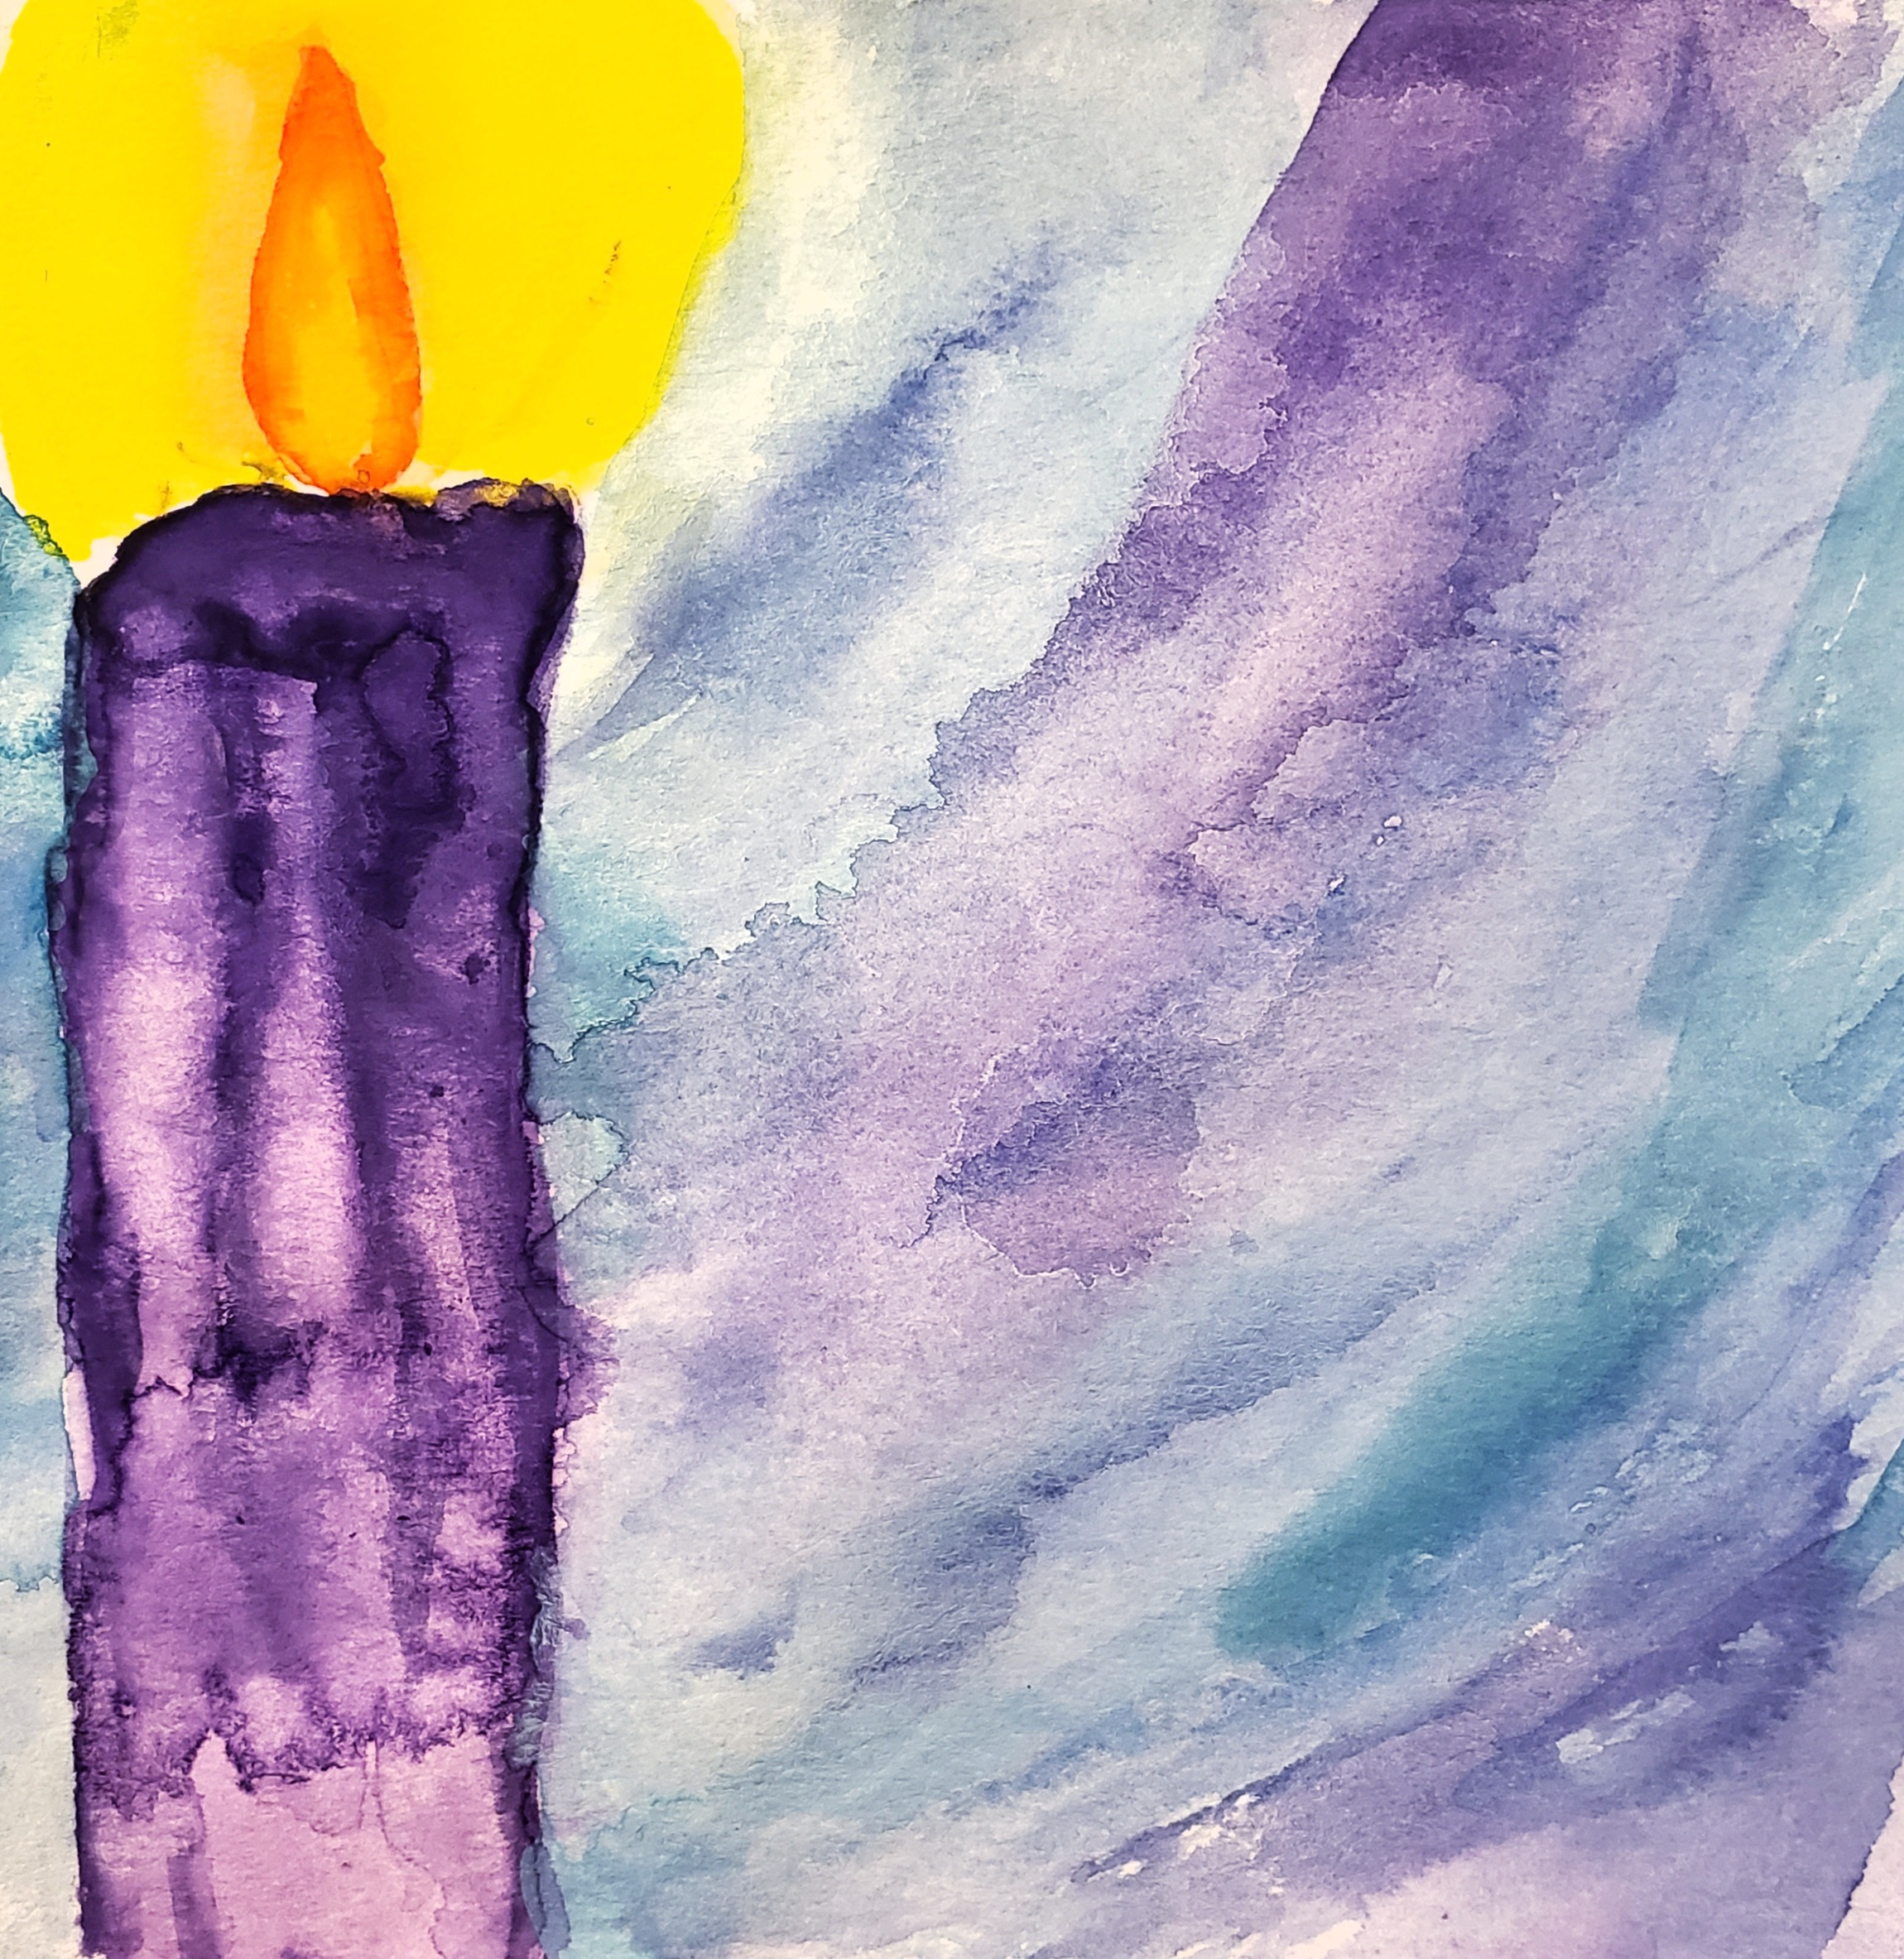 Advent: We Walk in Hope